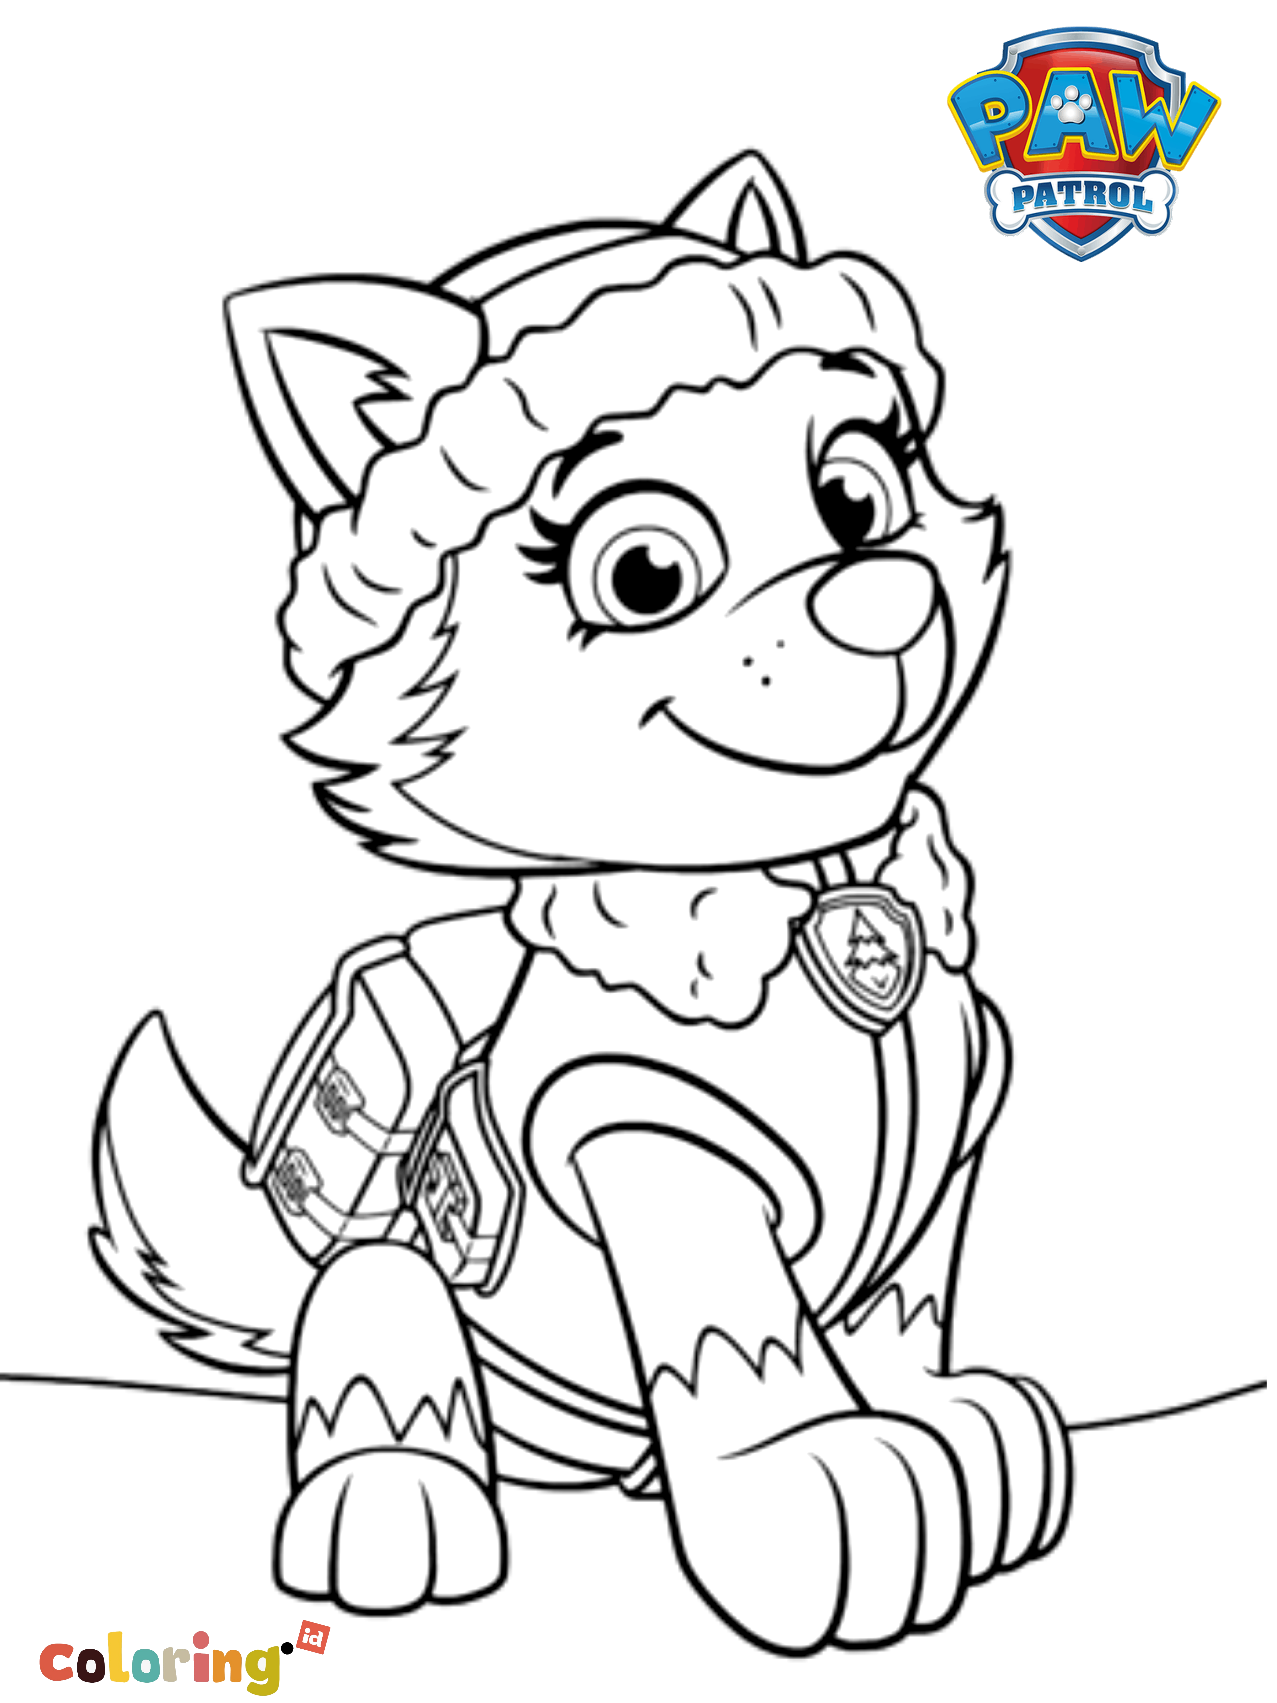 Paw Patrol Everest Free Coloring Page Thousands Of Coloring Pages And Printable Pages Of Cart In 2020 Paw Patrol Coloring Pages Paw Patrol Coloring Everest Paw Patrol